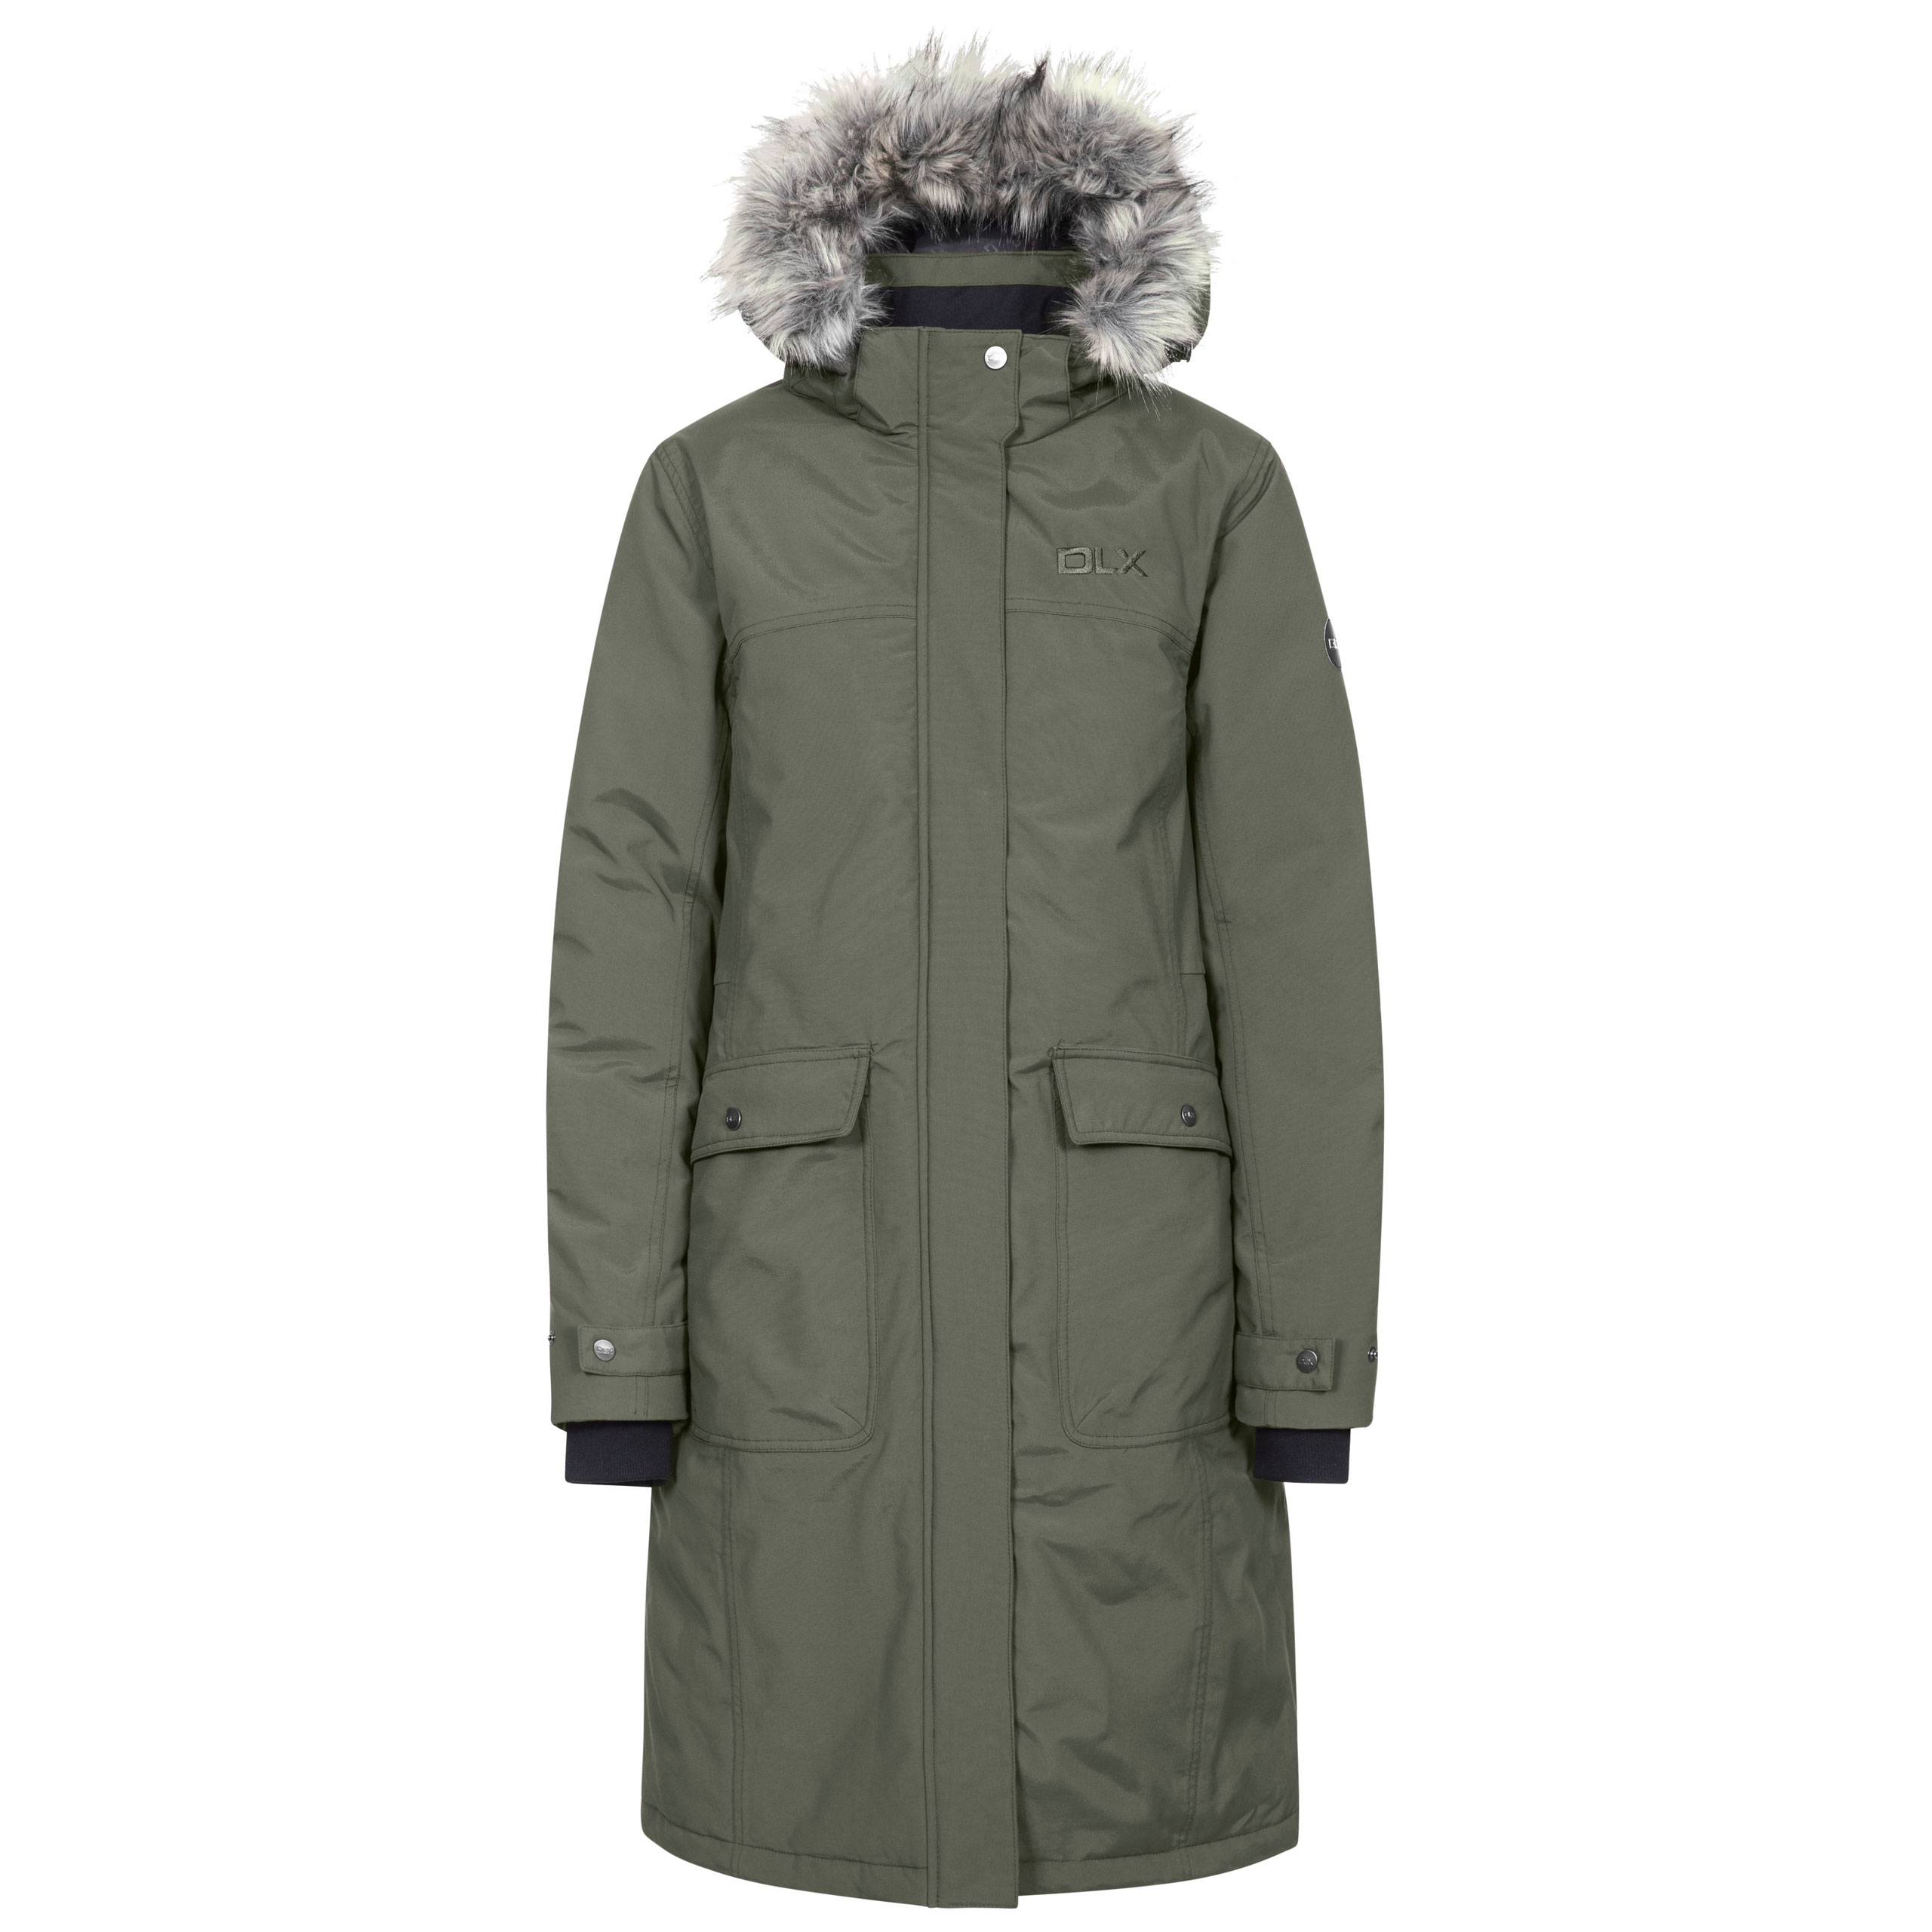 Shop the latest styles of Womens Waterproof/Water Resistant Coats at Macys. Check out our designer collection of chic coats including peacoats, trench coats, puffer coats and more! Long (11) Mid Length (79) Short The North Face Resolve Insulated Waterproof Jacket.